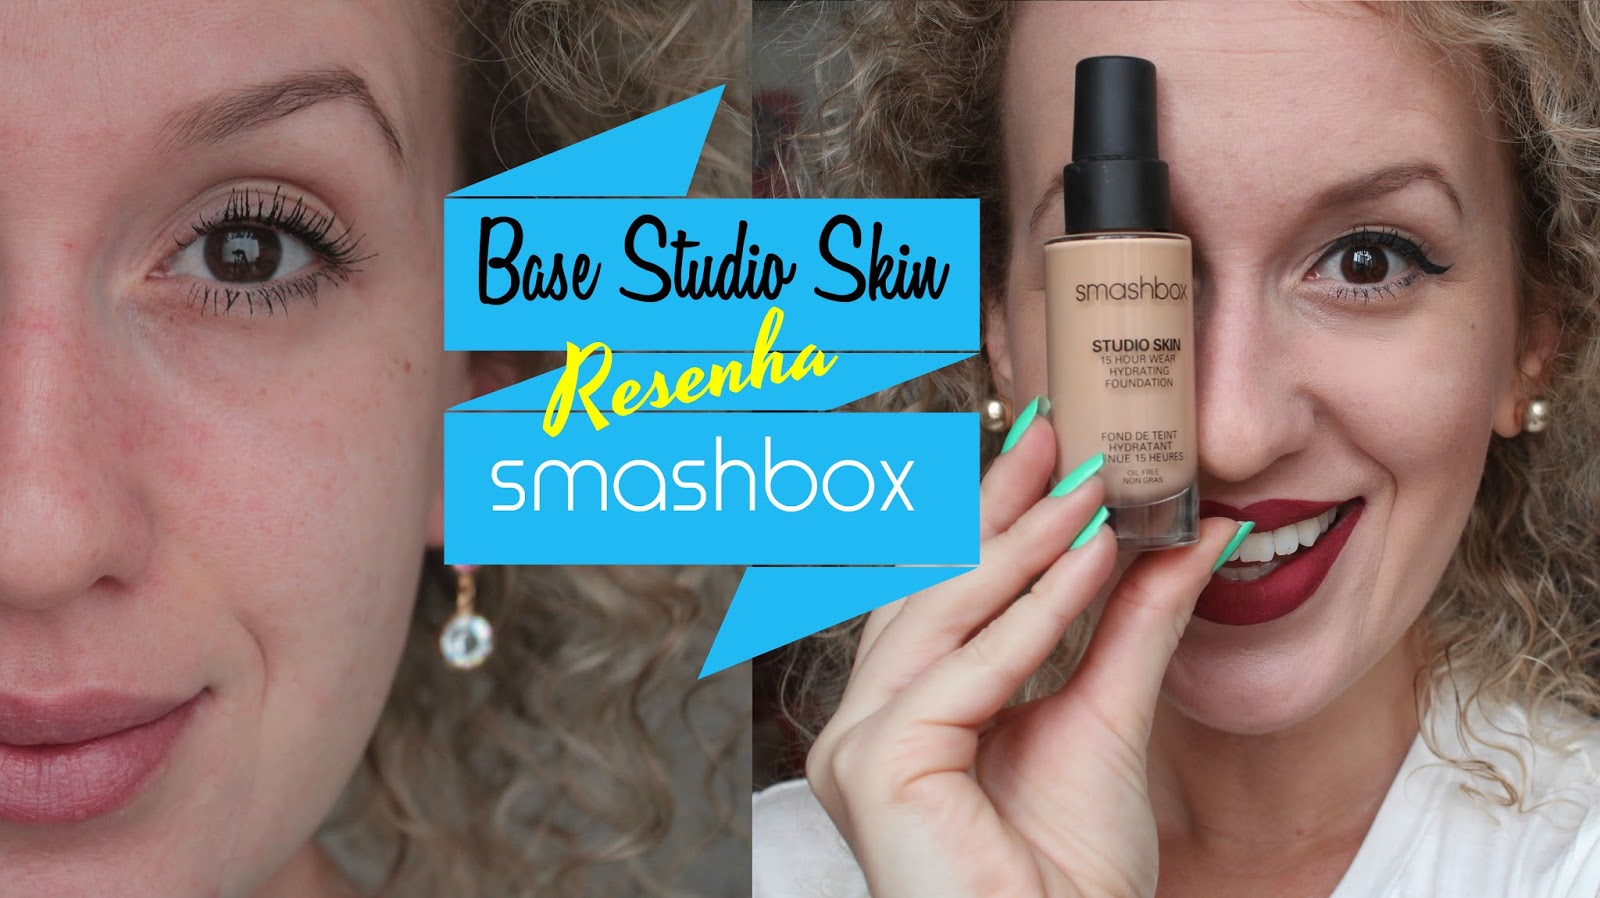 Base Studio Skin Smashbox